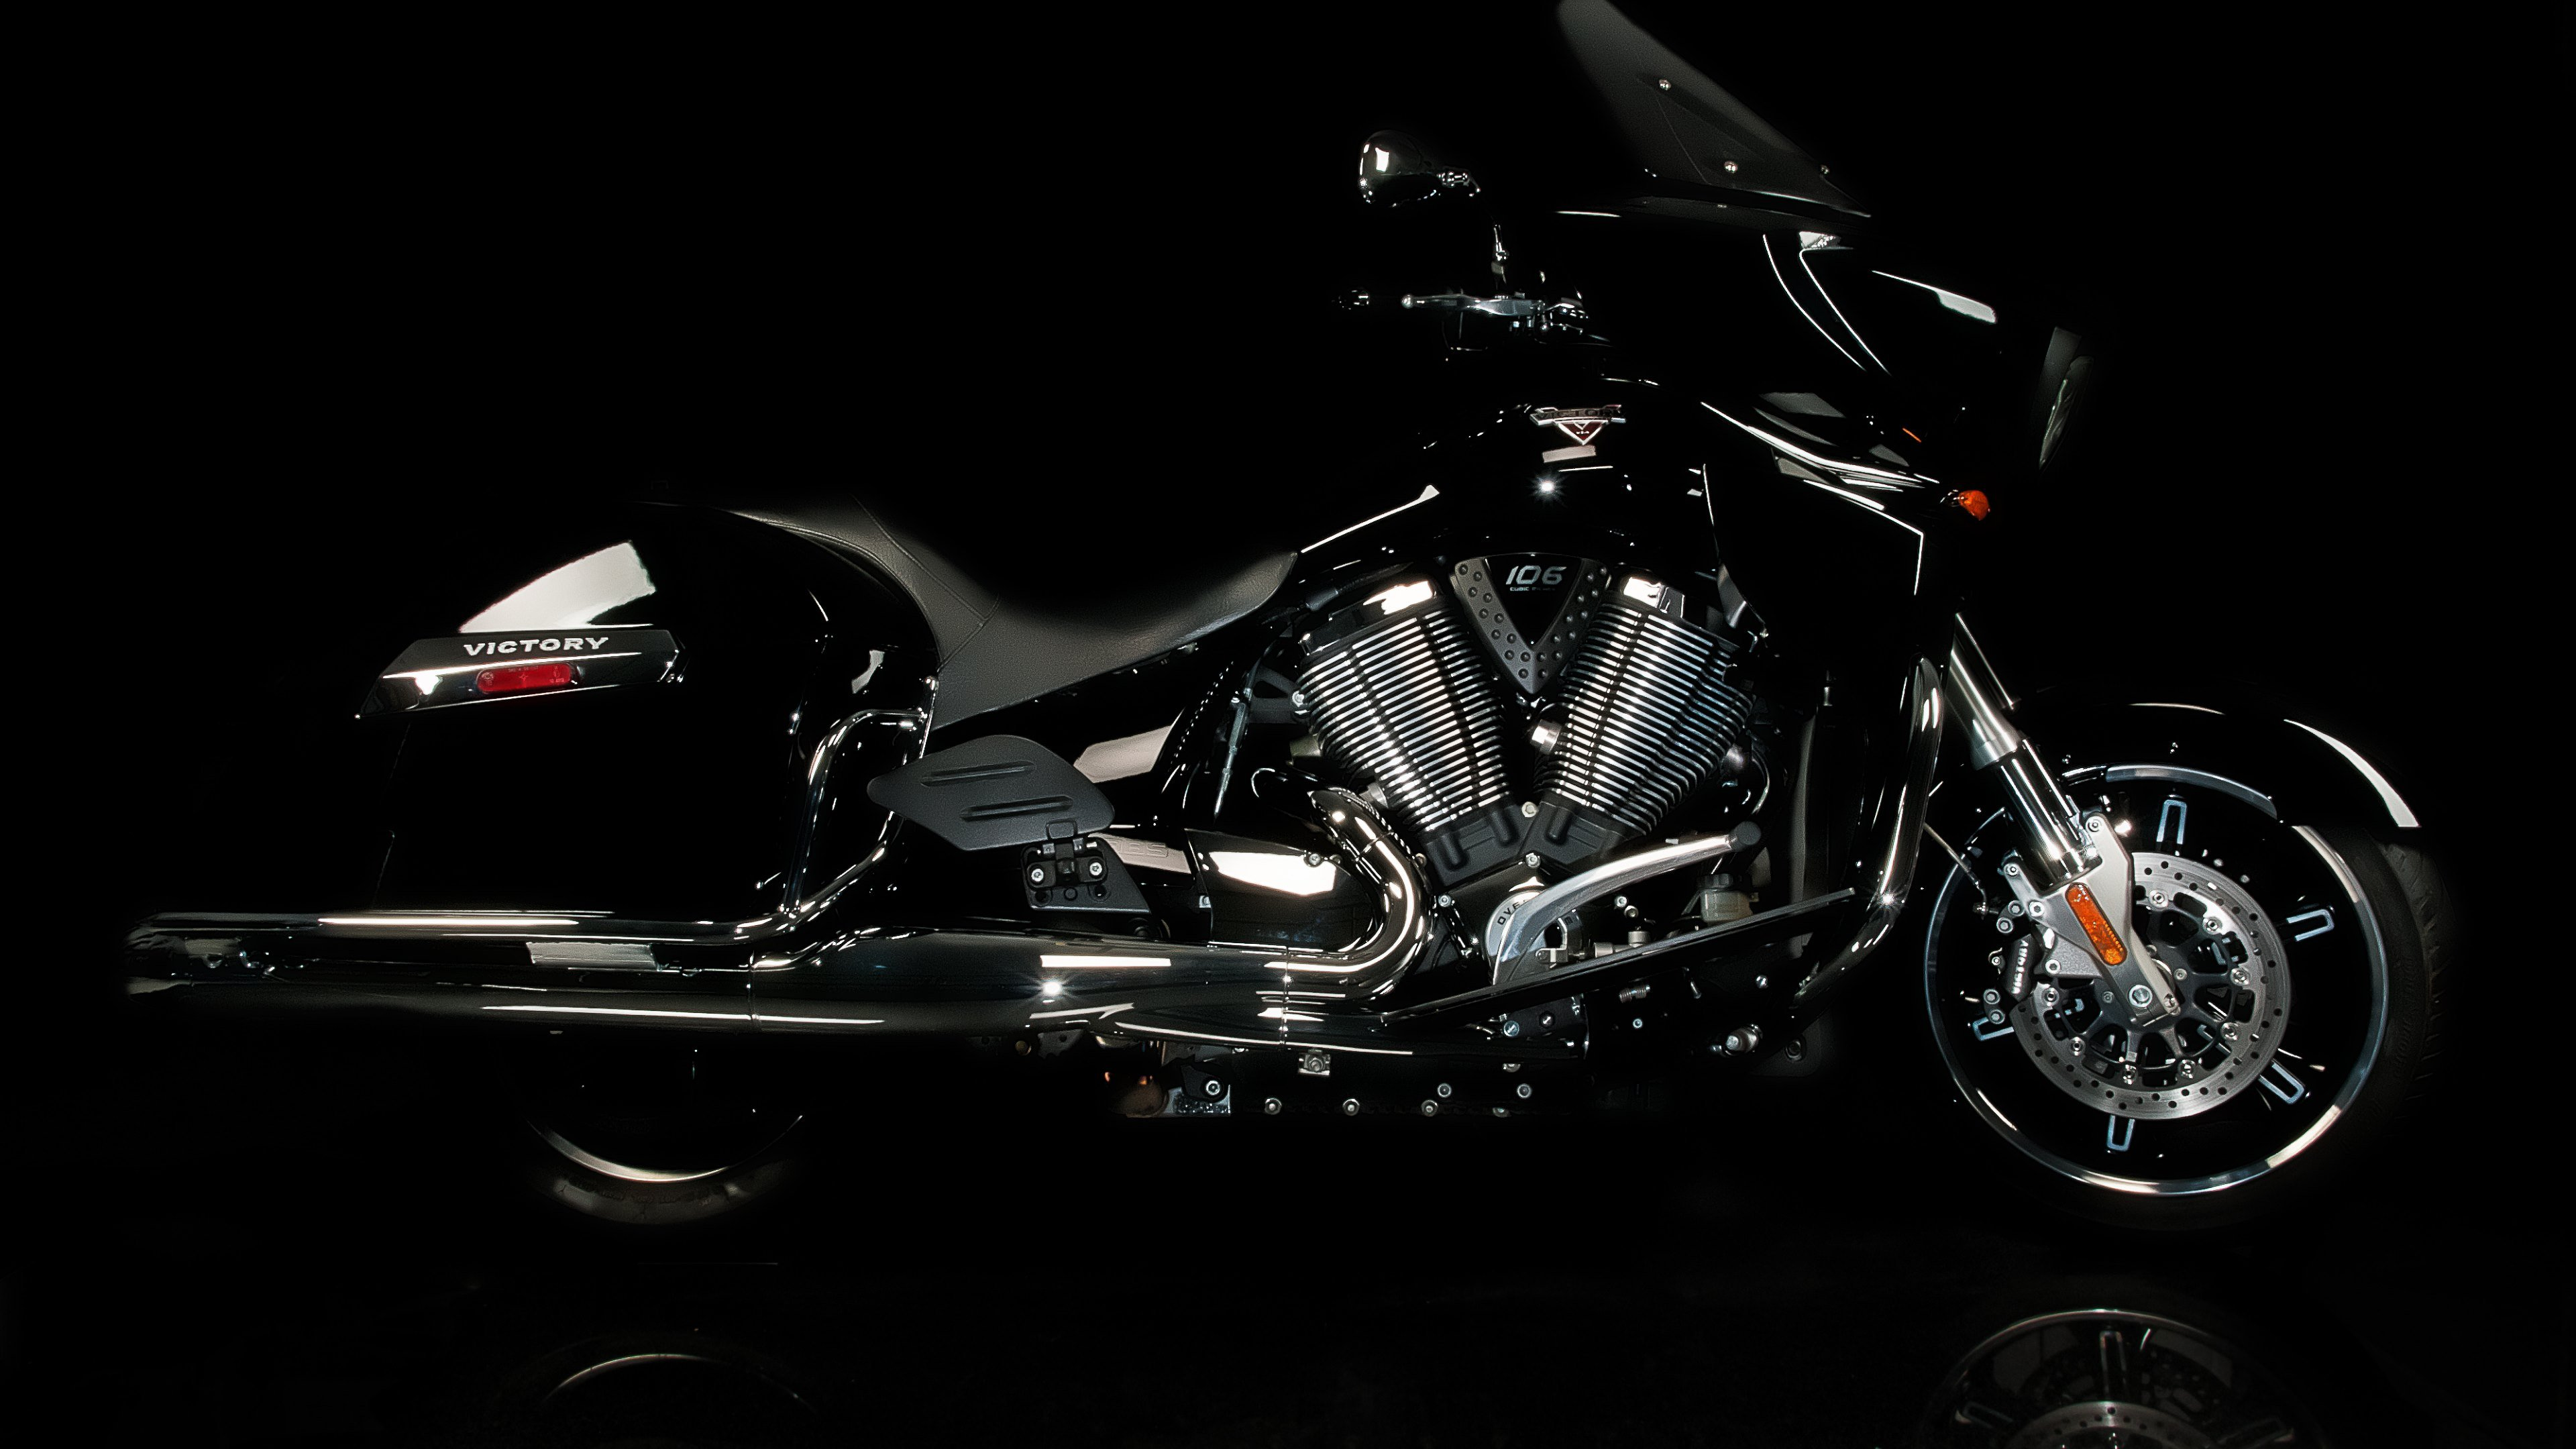 Luxury Motorcycle Hd Wallpapers: Victory Motorcycles Wallpaper